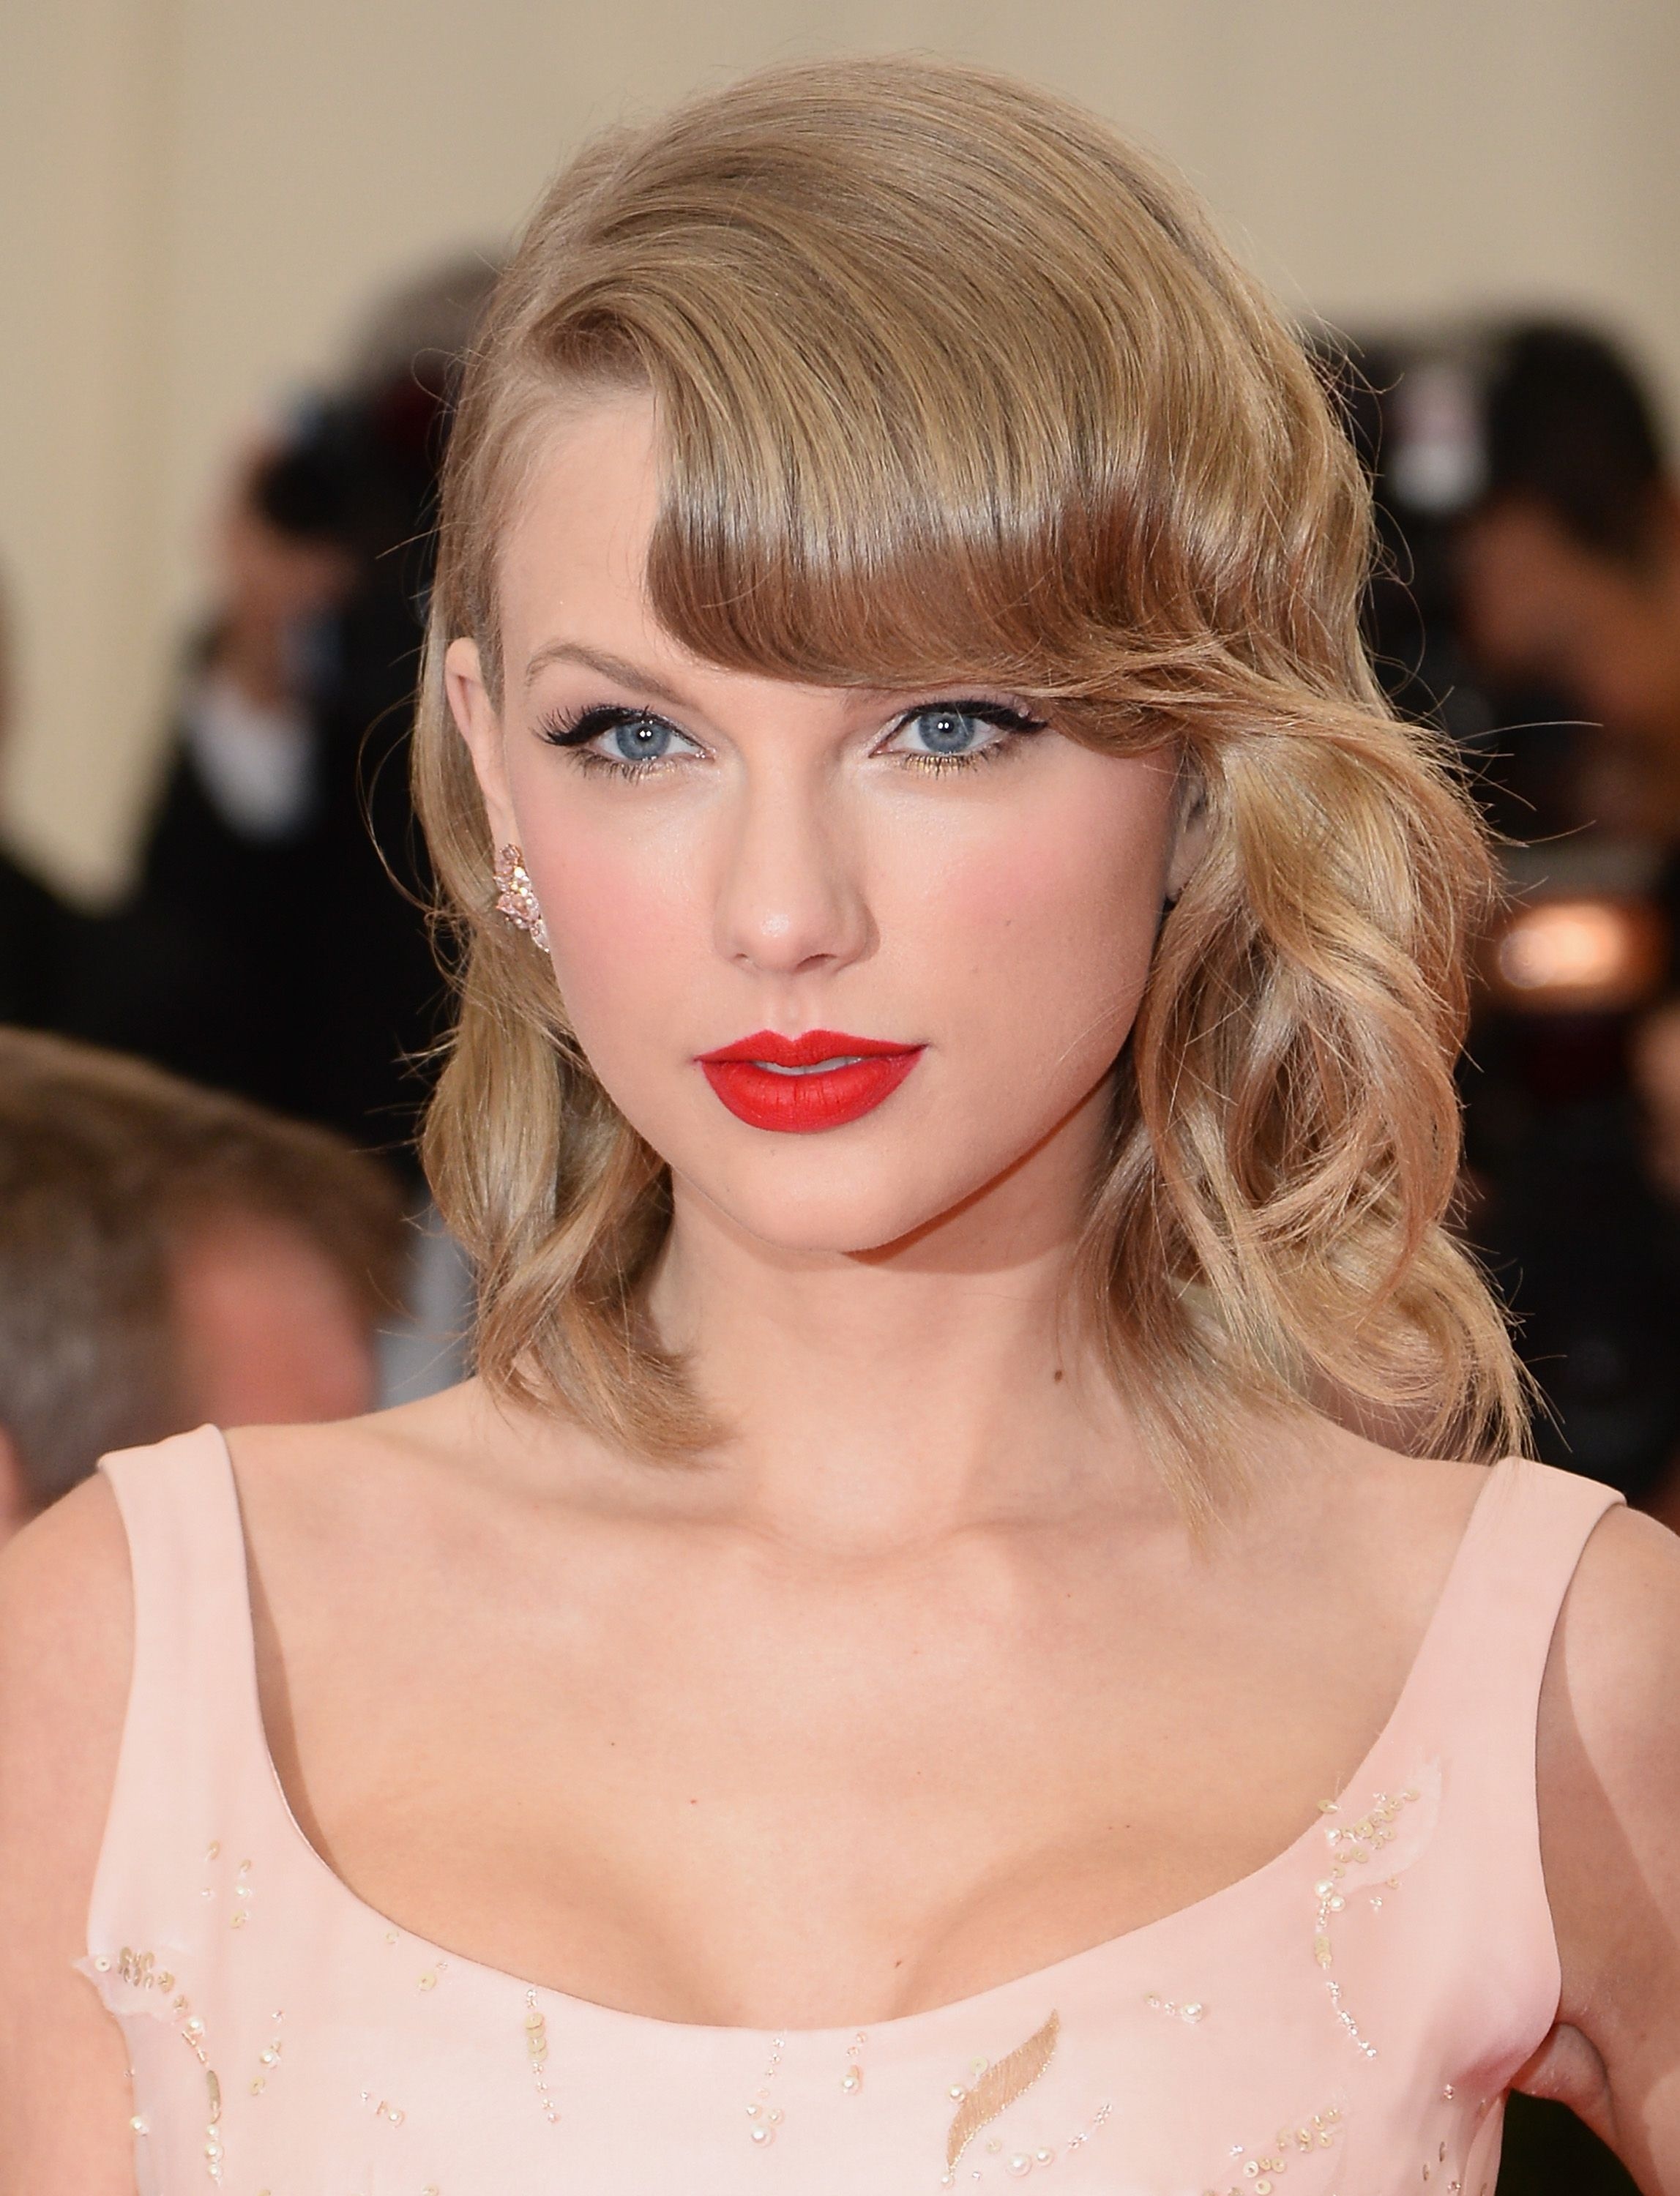 The Blonde Hair Dictionary Defining Every Shade Under The Sun Taylor Swift Makeup Taylor Swift Beauty